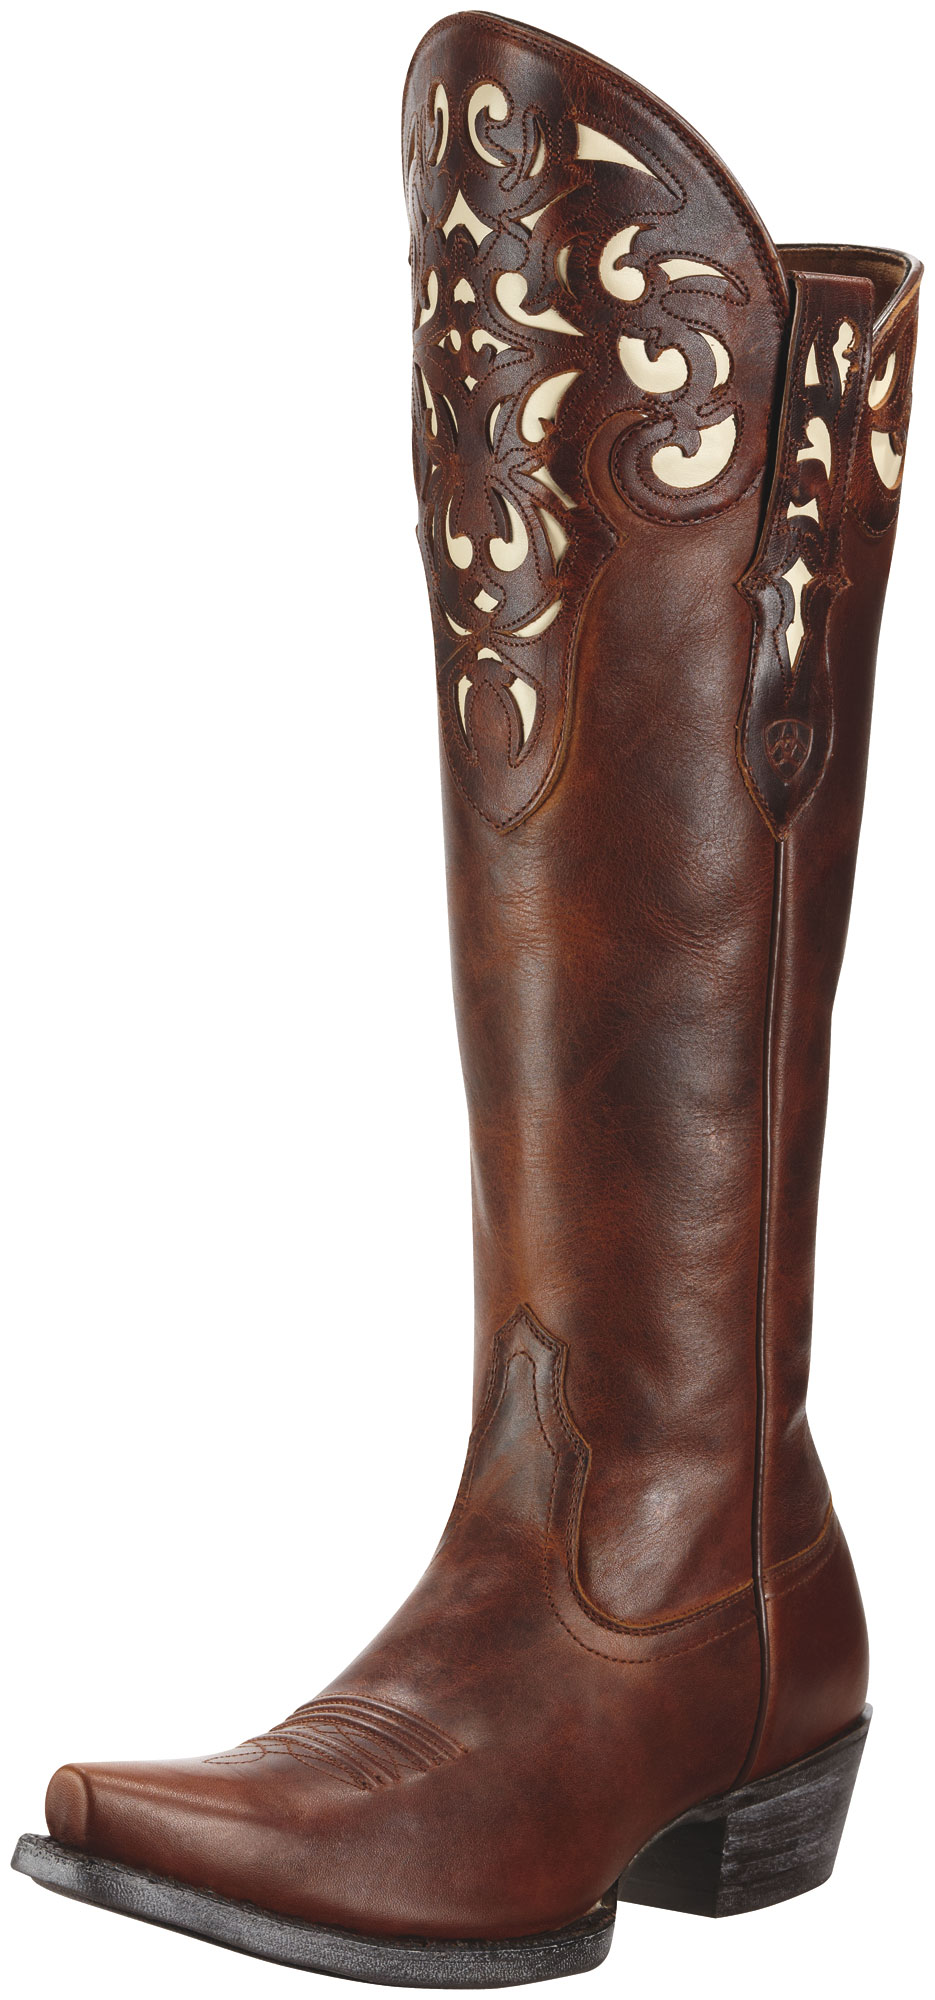 Ariat's Hacienda Boots